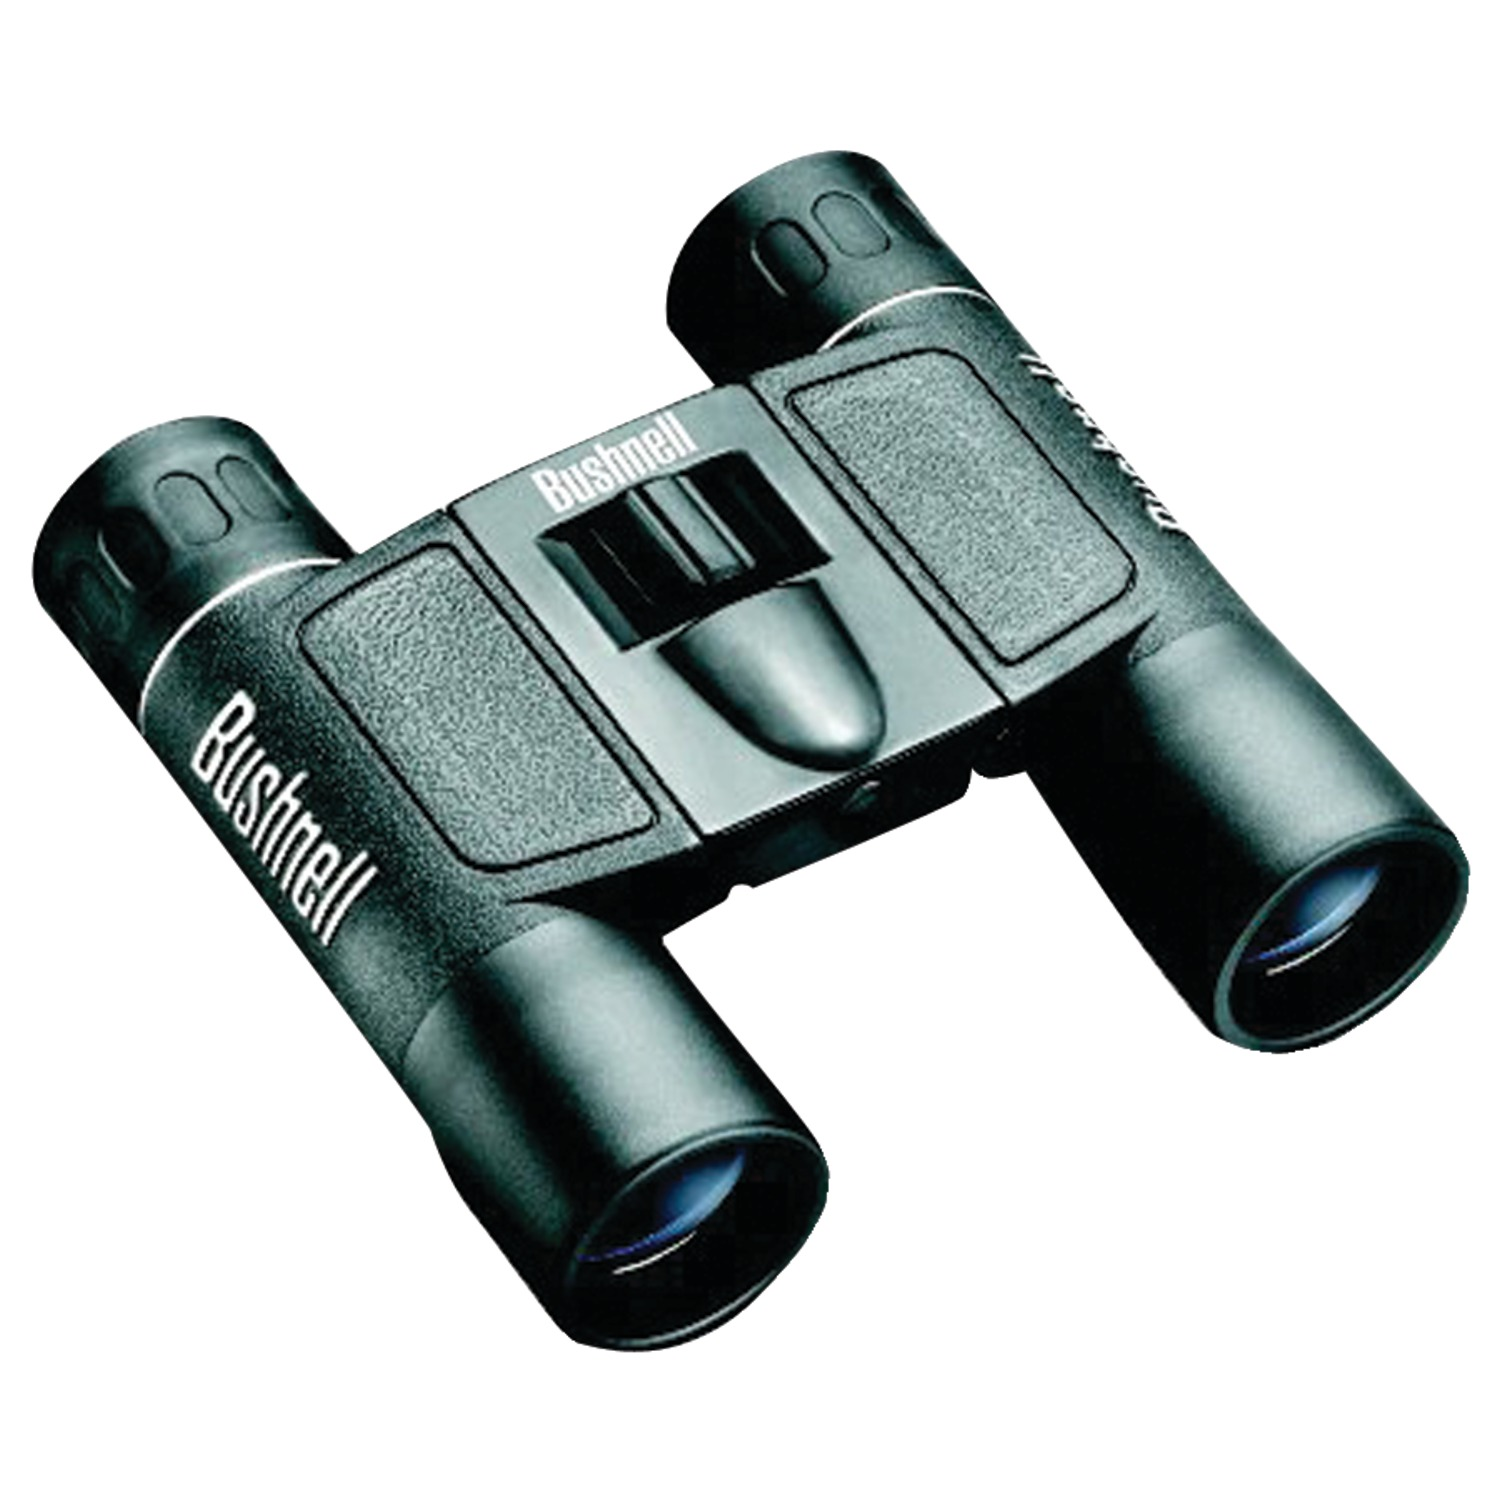 Bushnell 132516 PowerView 10 x 25mm Binoculars by Bushnell